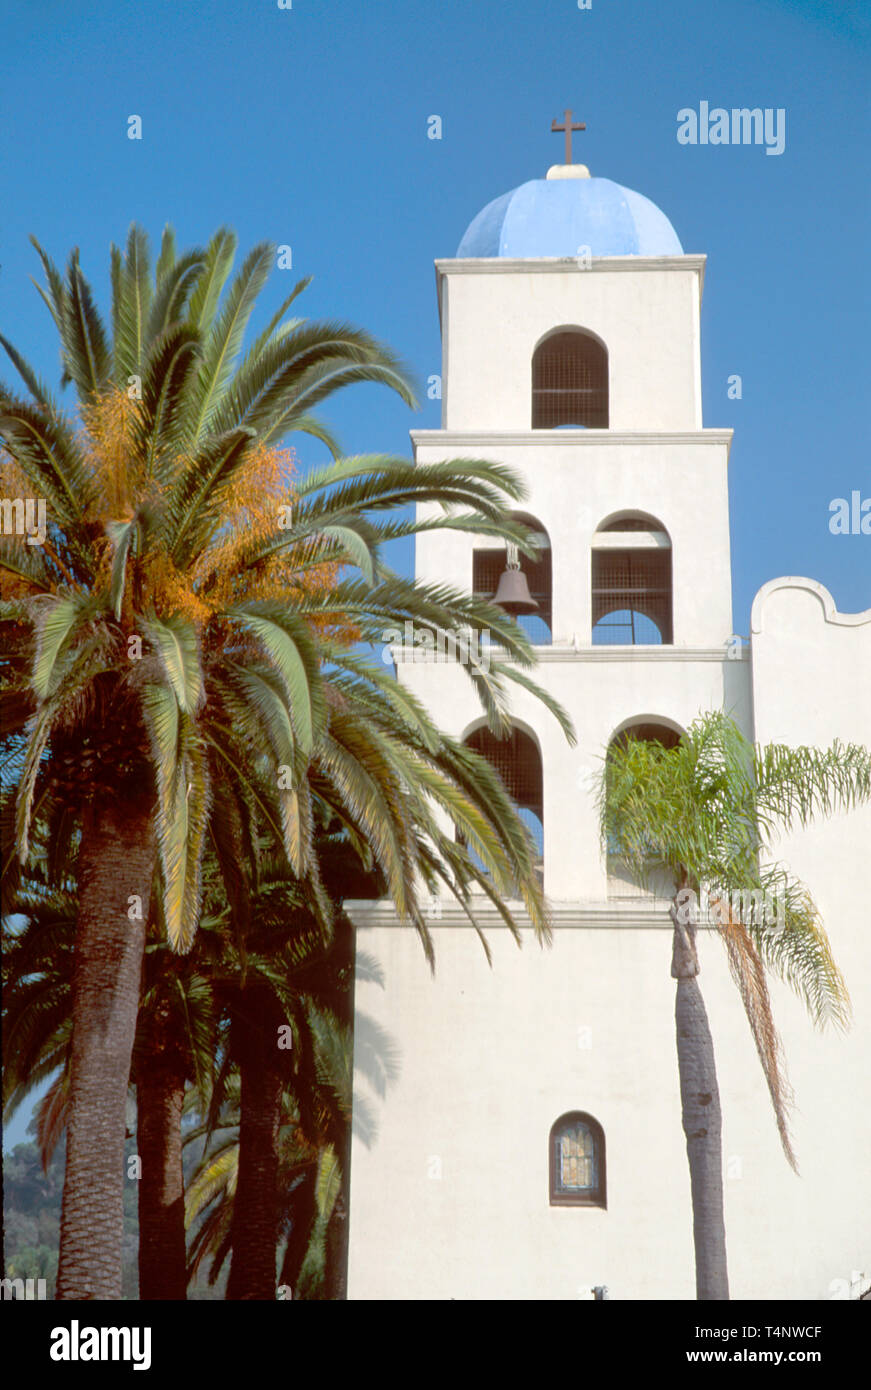 California San Diego Old Town Immaculate Conception Church - Stock Image